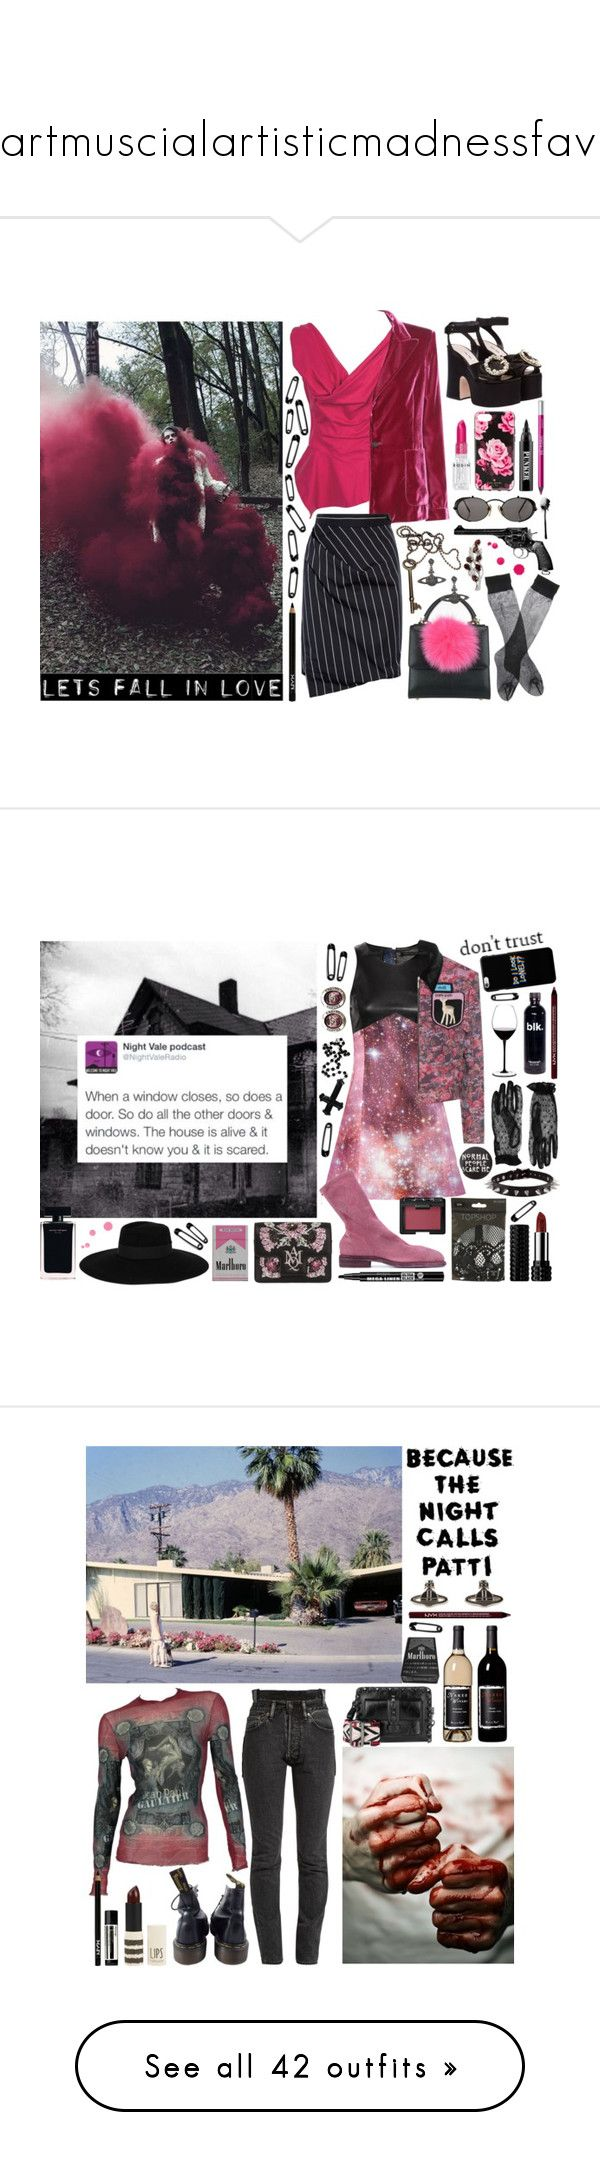 """""""Painartmuscialartisticmadnessfavlife"""" by nothingisnormal ❤ liked on Polyvore featuring Vivienne Westwood, Tom Ford, Brandy Melville, Rodin, Les Petits Joueurs, NYX, Vivienne Westwood Anglomania, Miu Miu, Kate Spade and Jean-Paul Gaultier"""